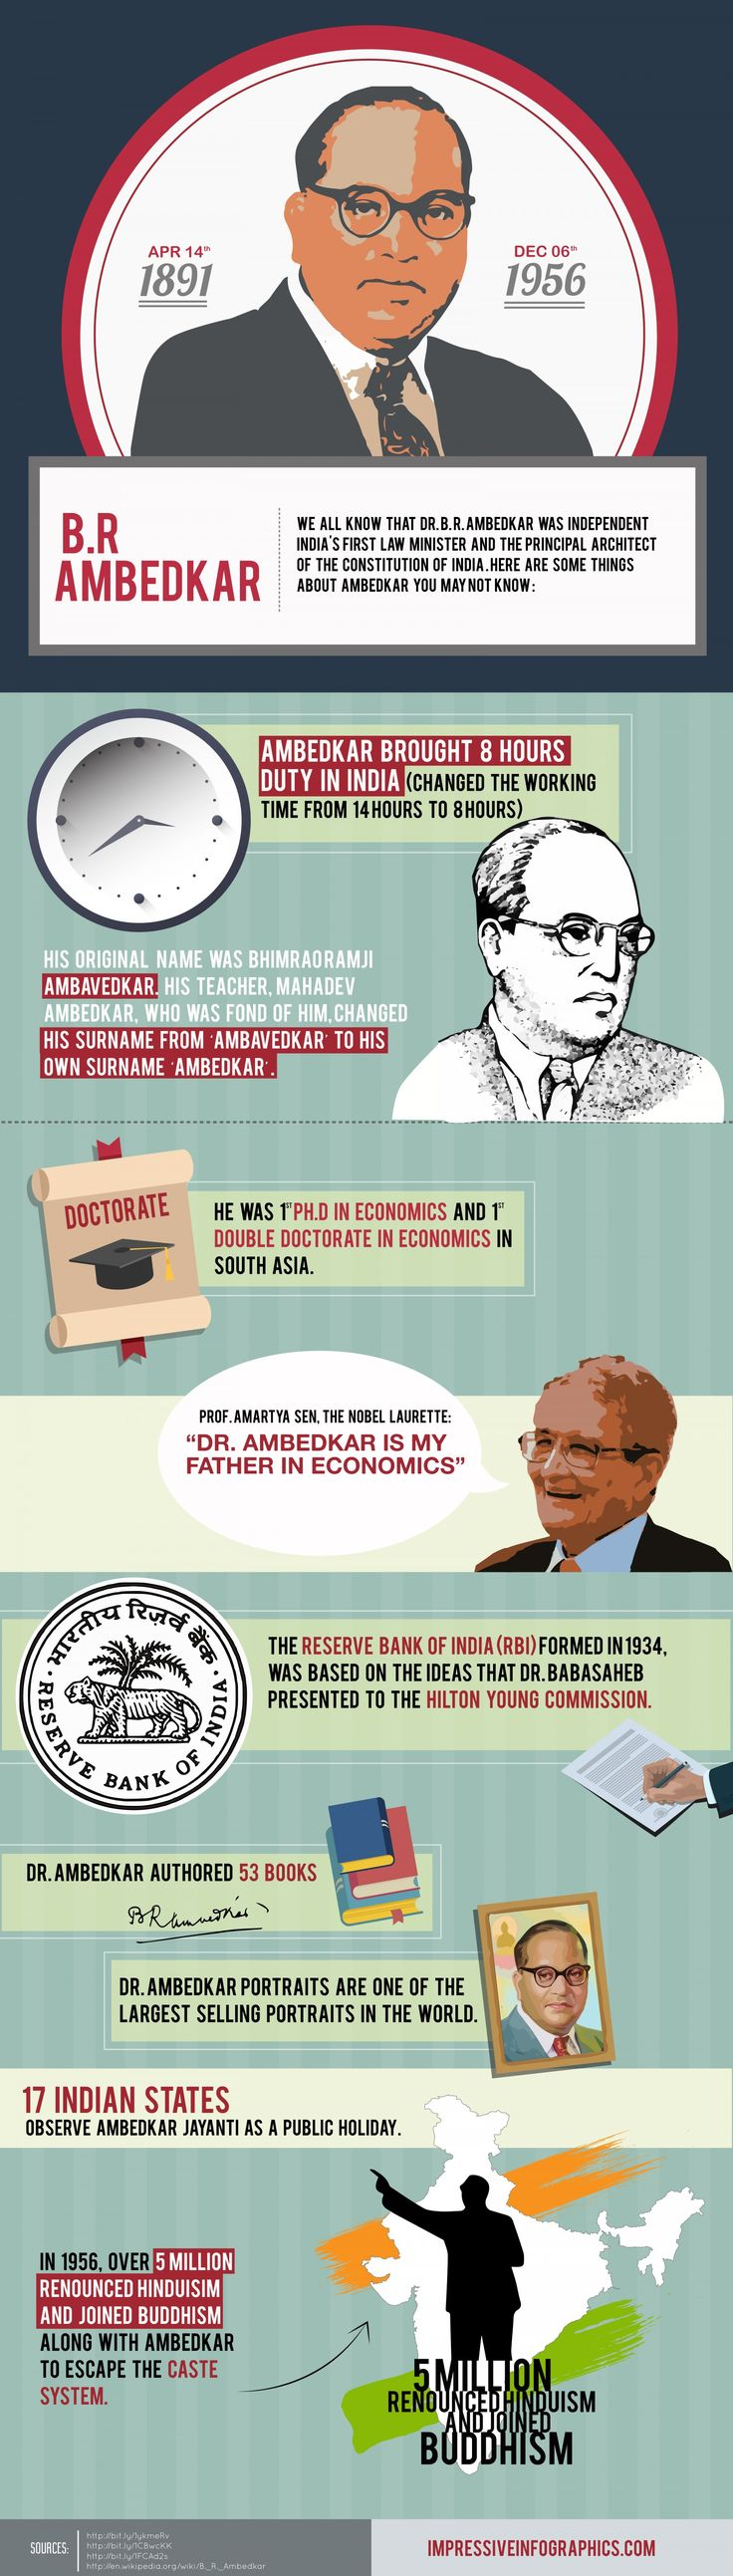 Dr. Ambedkar - The Father of Modern India